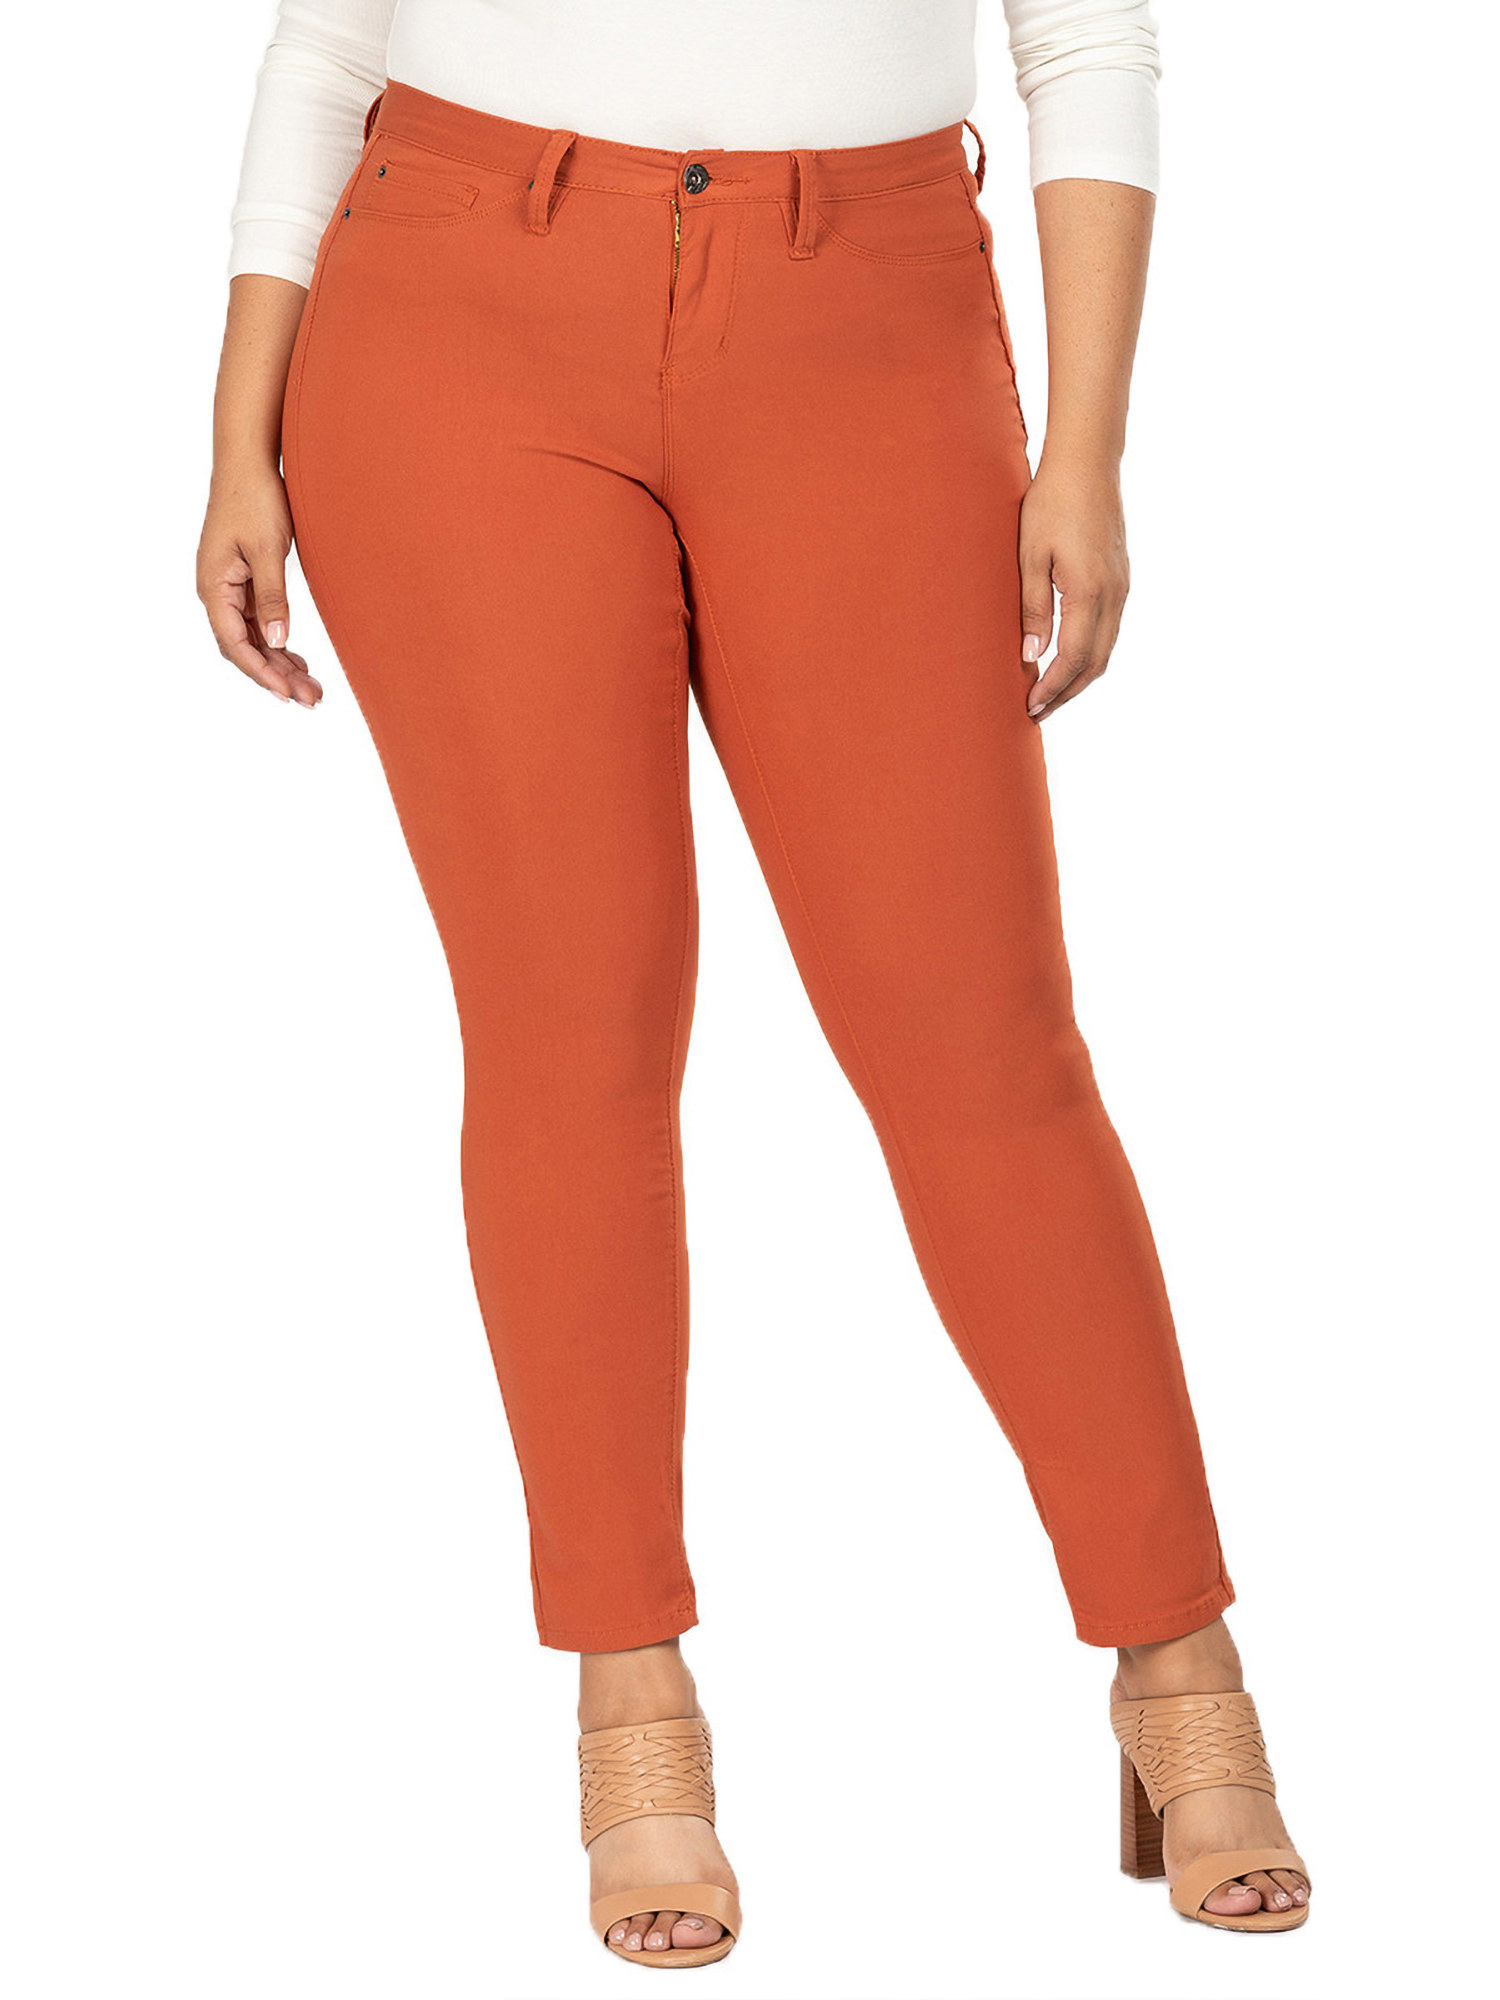 Model wearing the orange skinny jeans